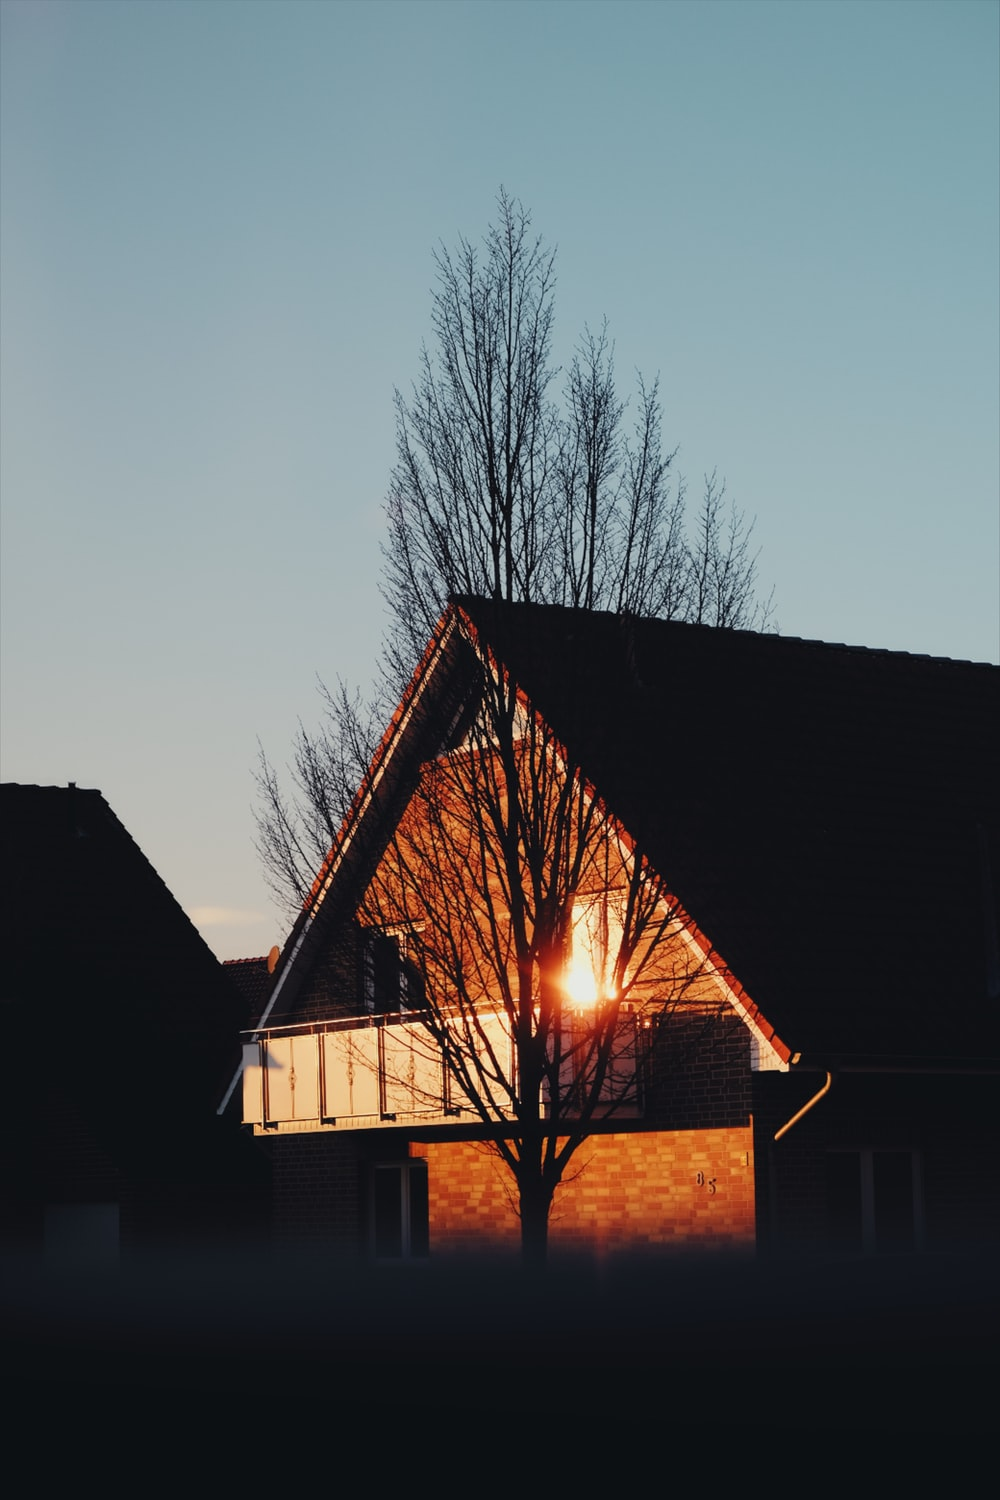 brown and white house near bare trees during sunset